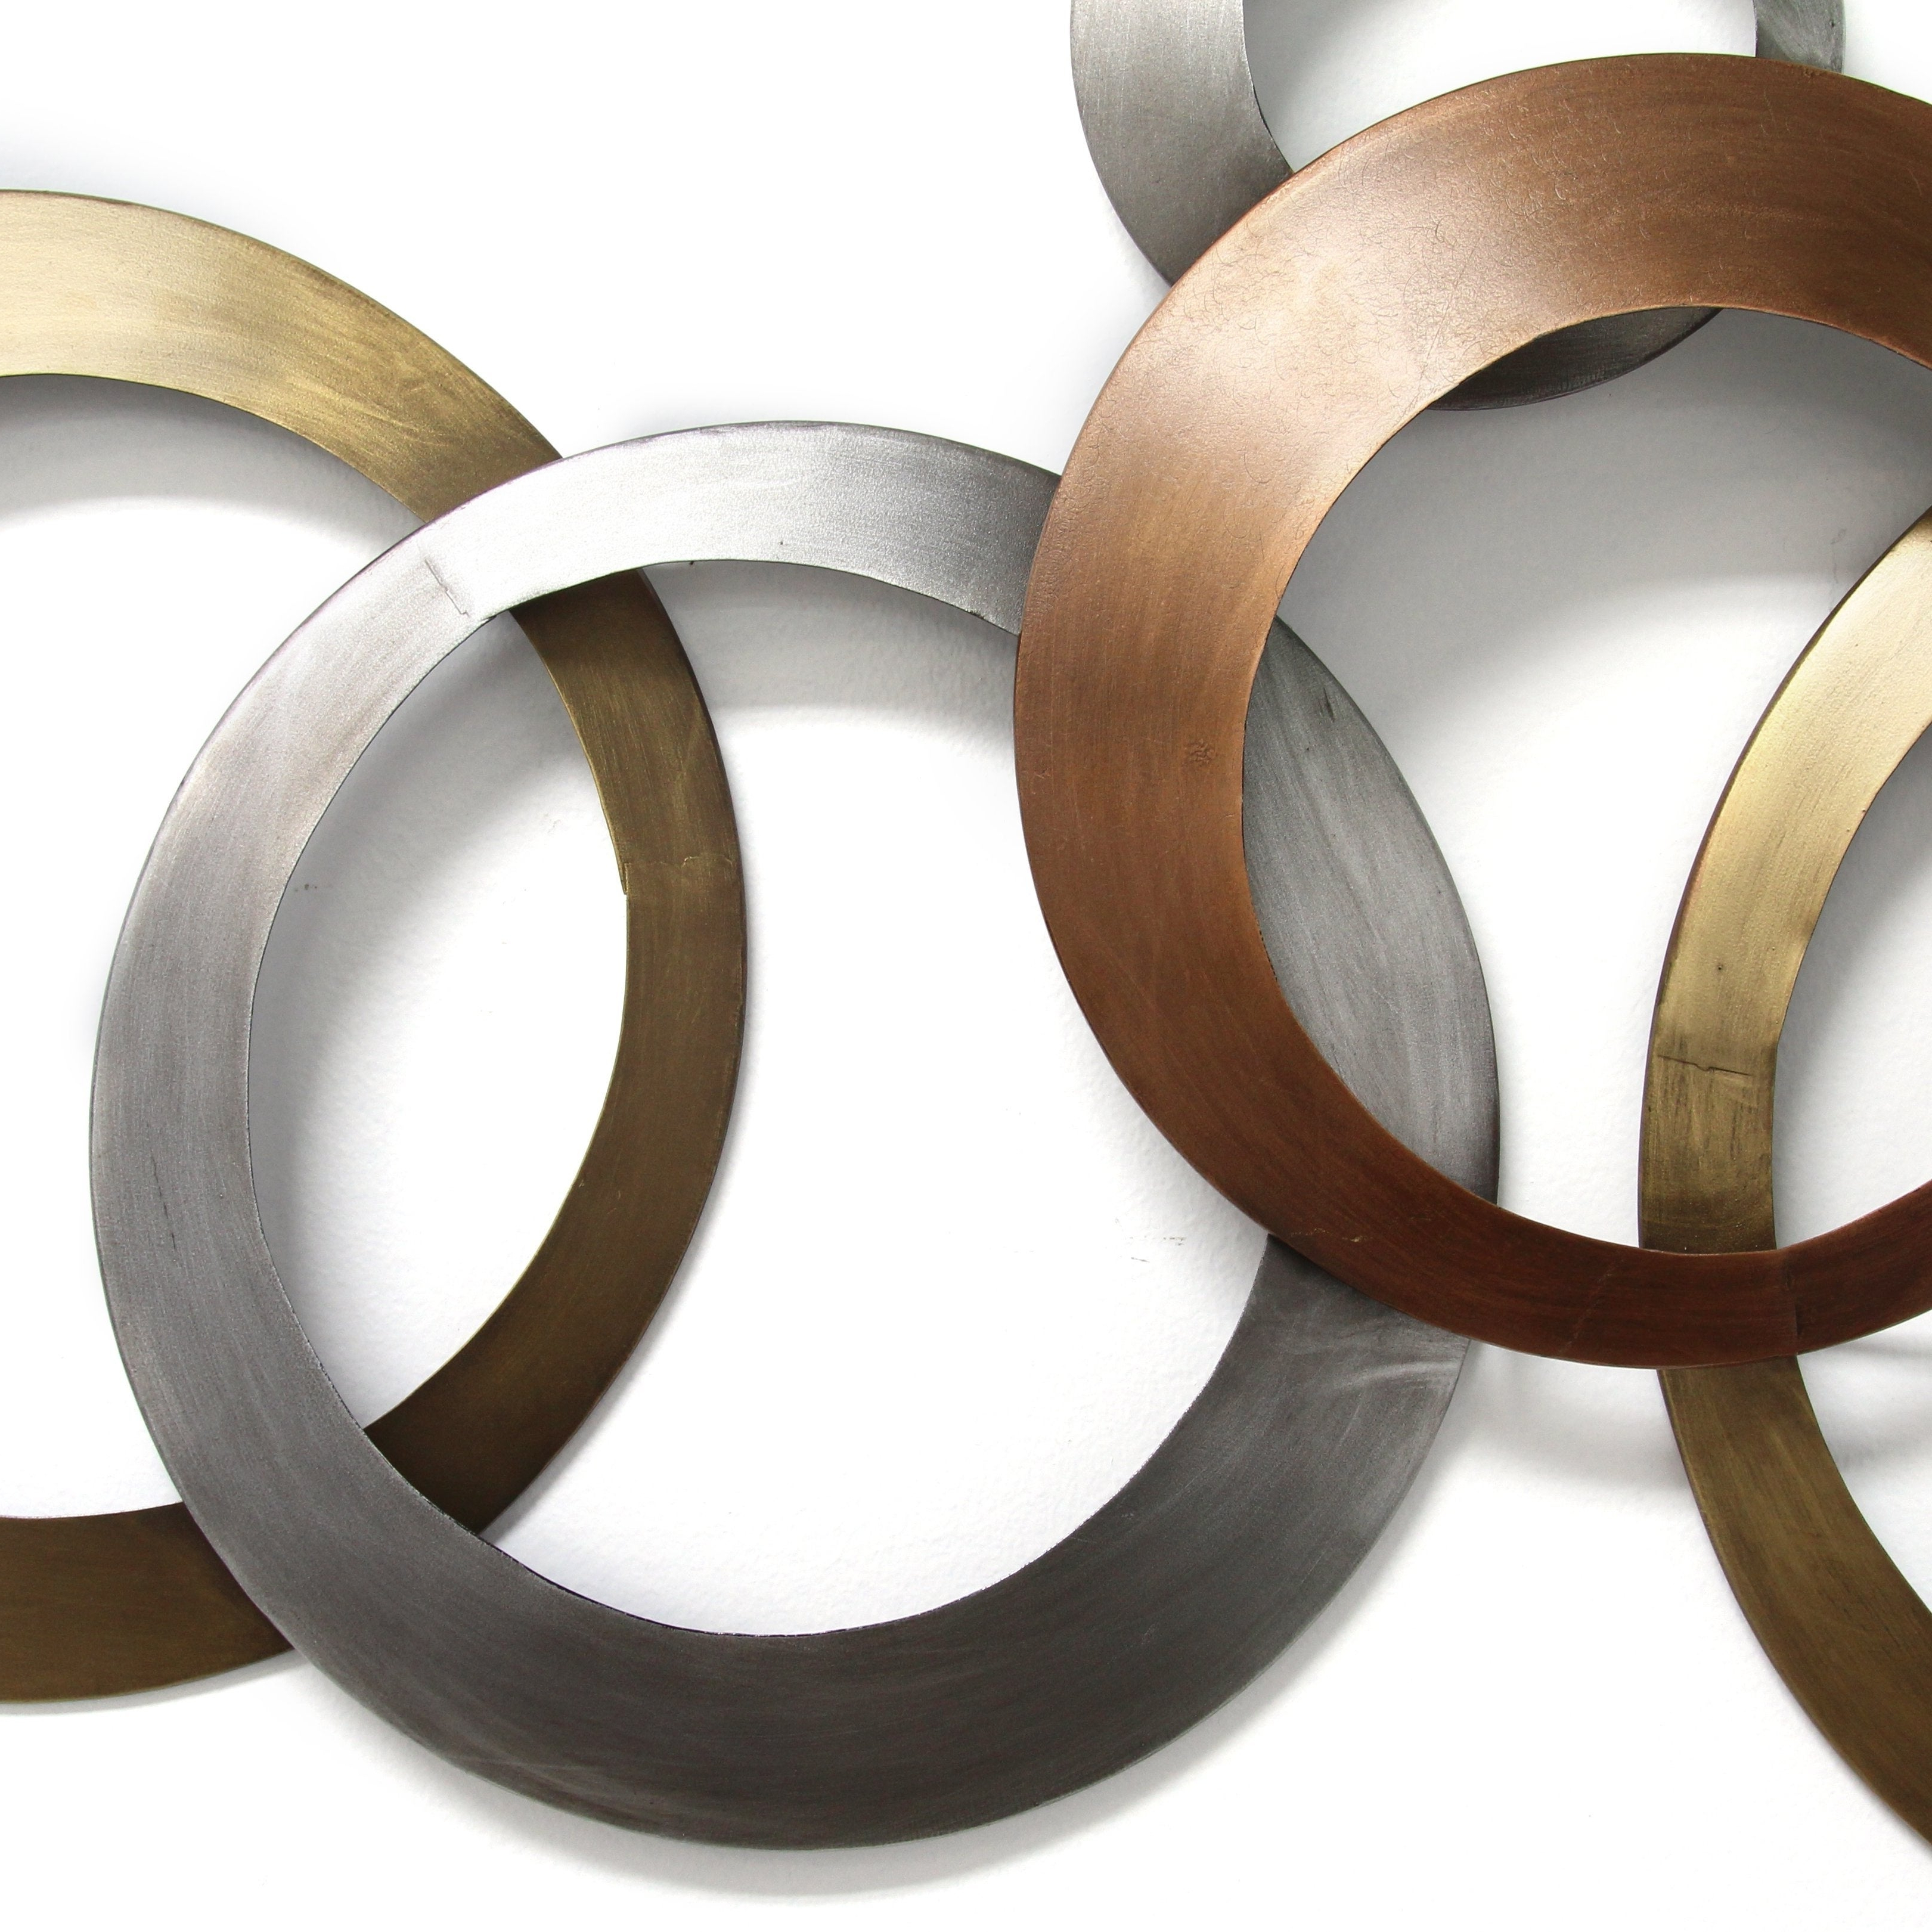 Shop Stratton Home Decor Multi Metallic Rings Wall Decor – Free Throughout Most Current Rings Wall Decor (Gallery 20 of 20)